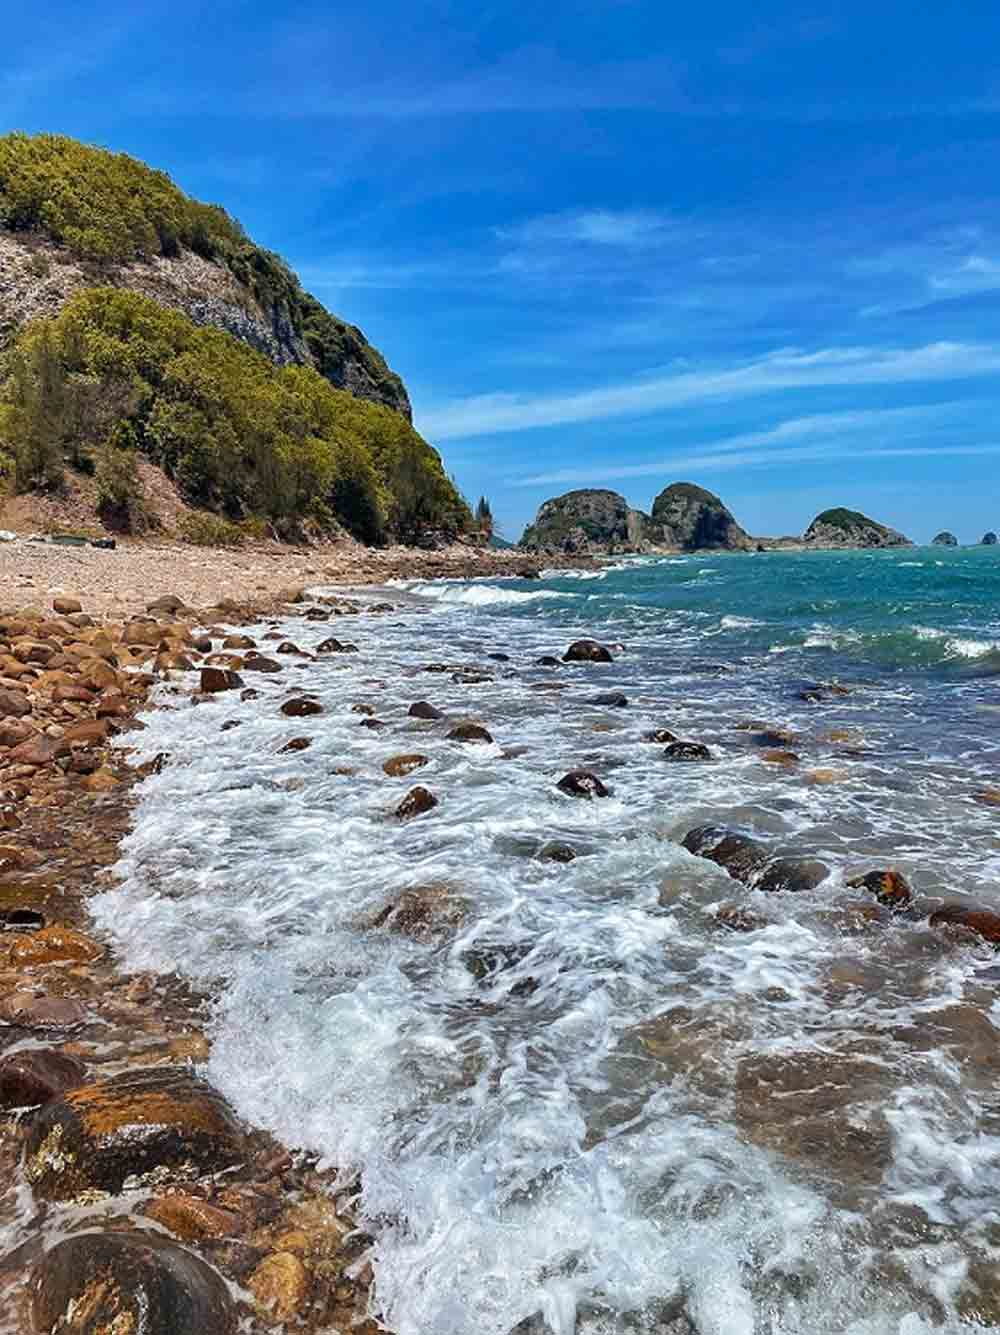 Bai Dong, unexplored beach, central Vietnam, lesser known beach,  beauty and tranquility, round trip ticket, coral diving and swimming